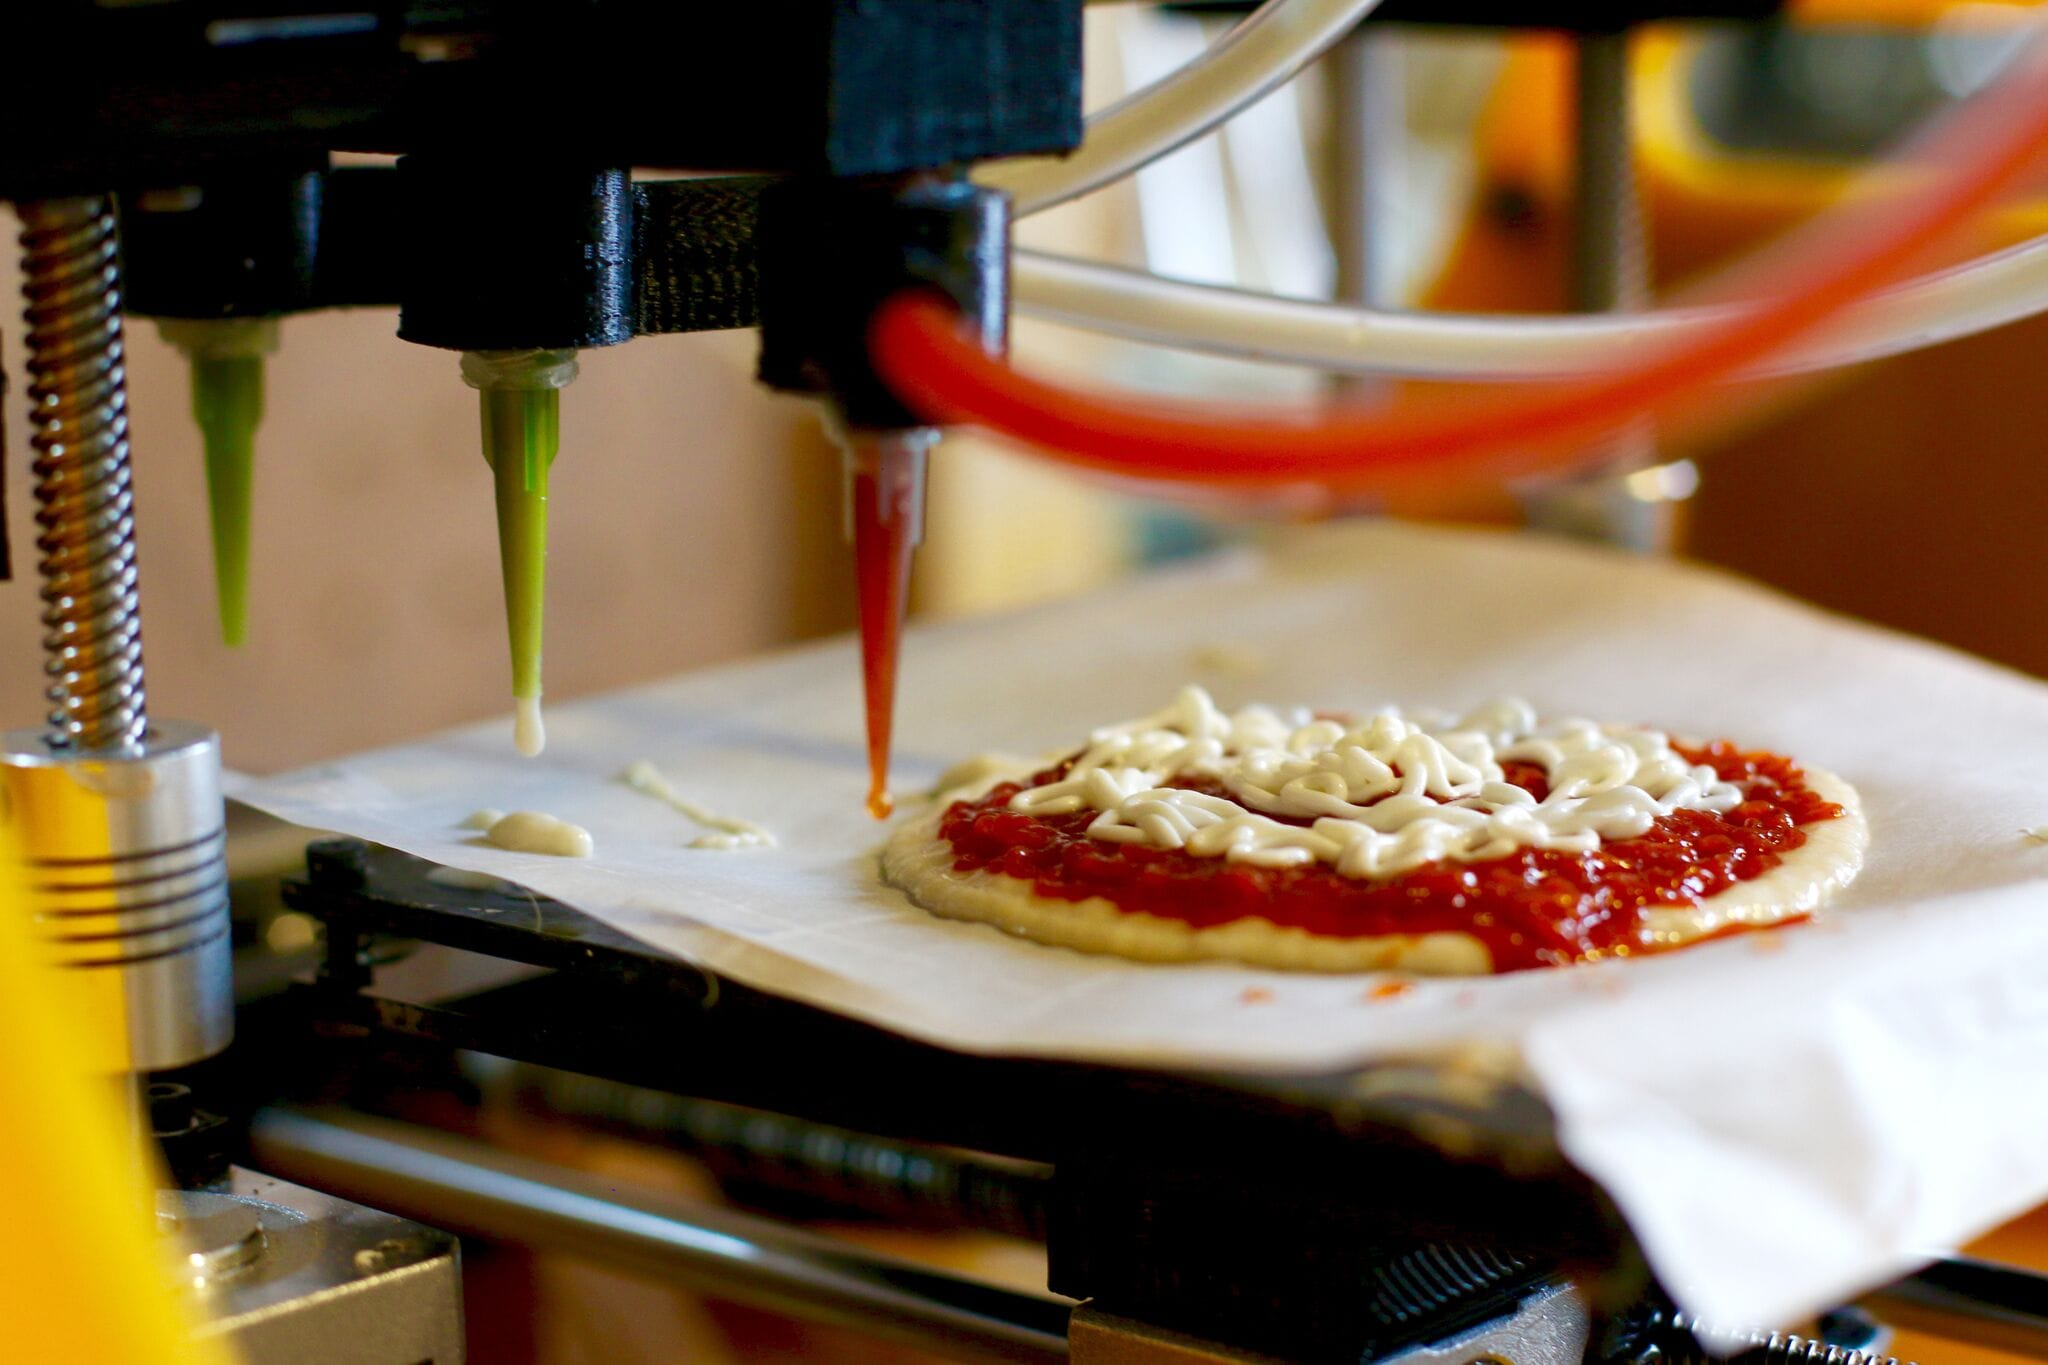 A 3D printed pizza by BeeHex, but what could the future hold for 3D printed food?